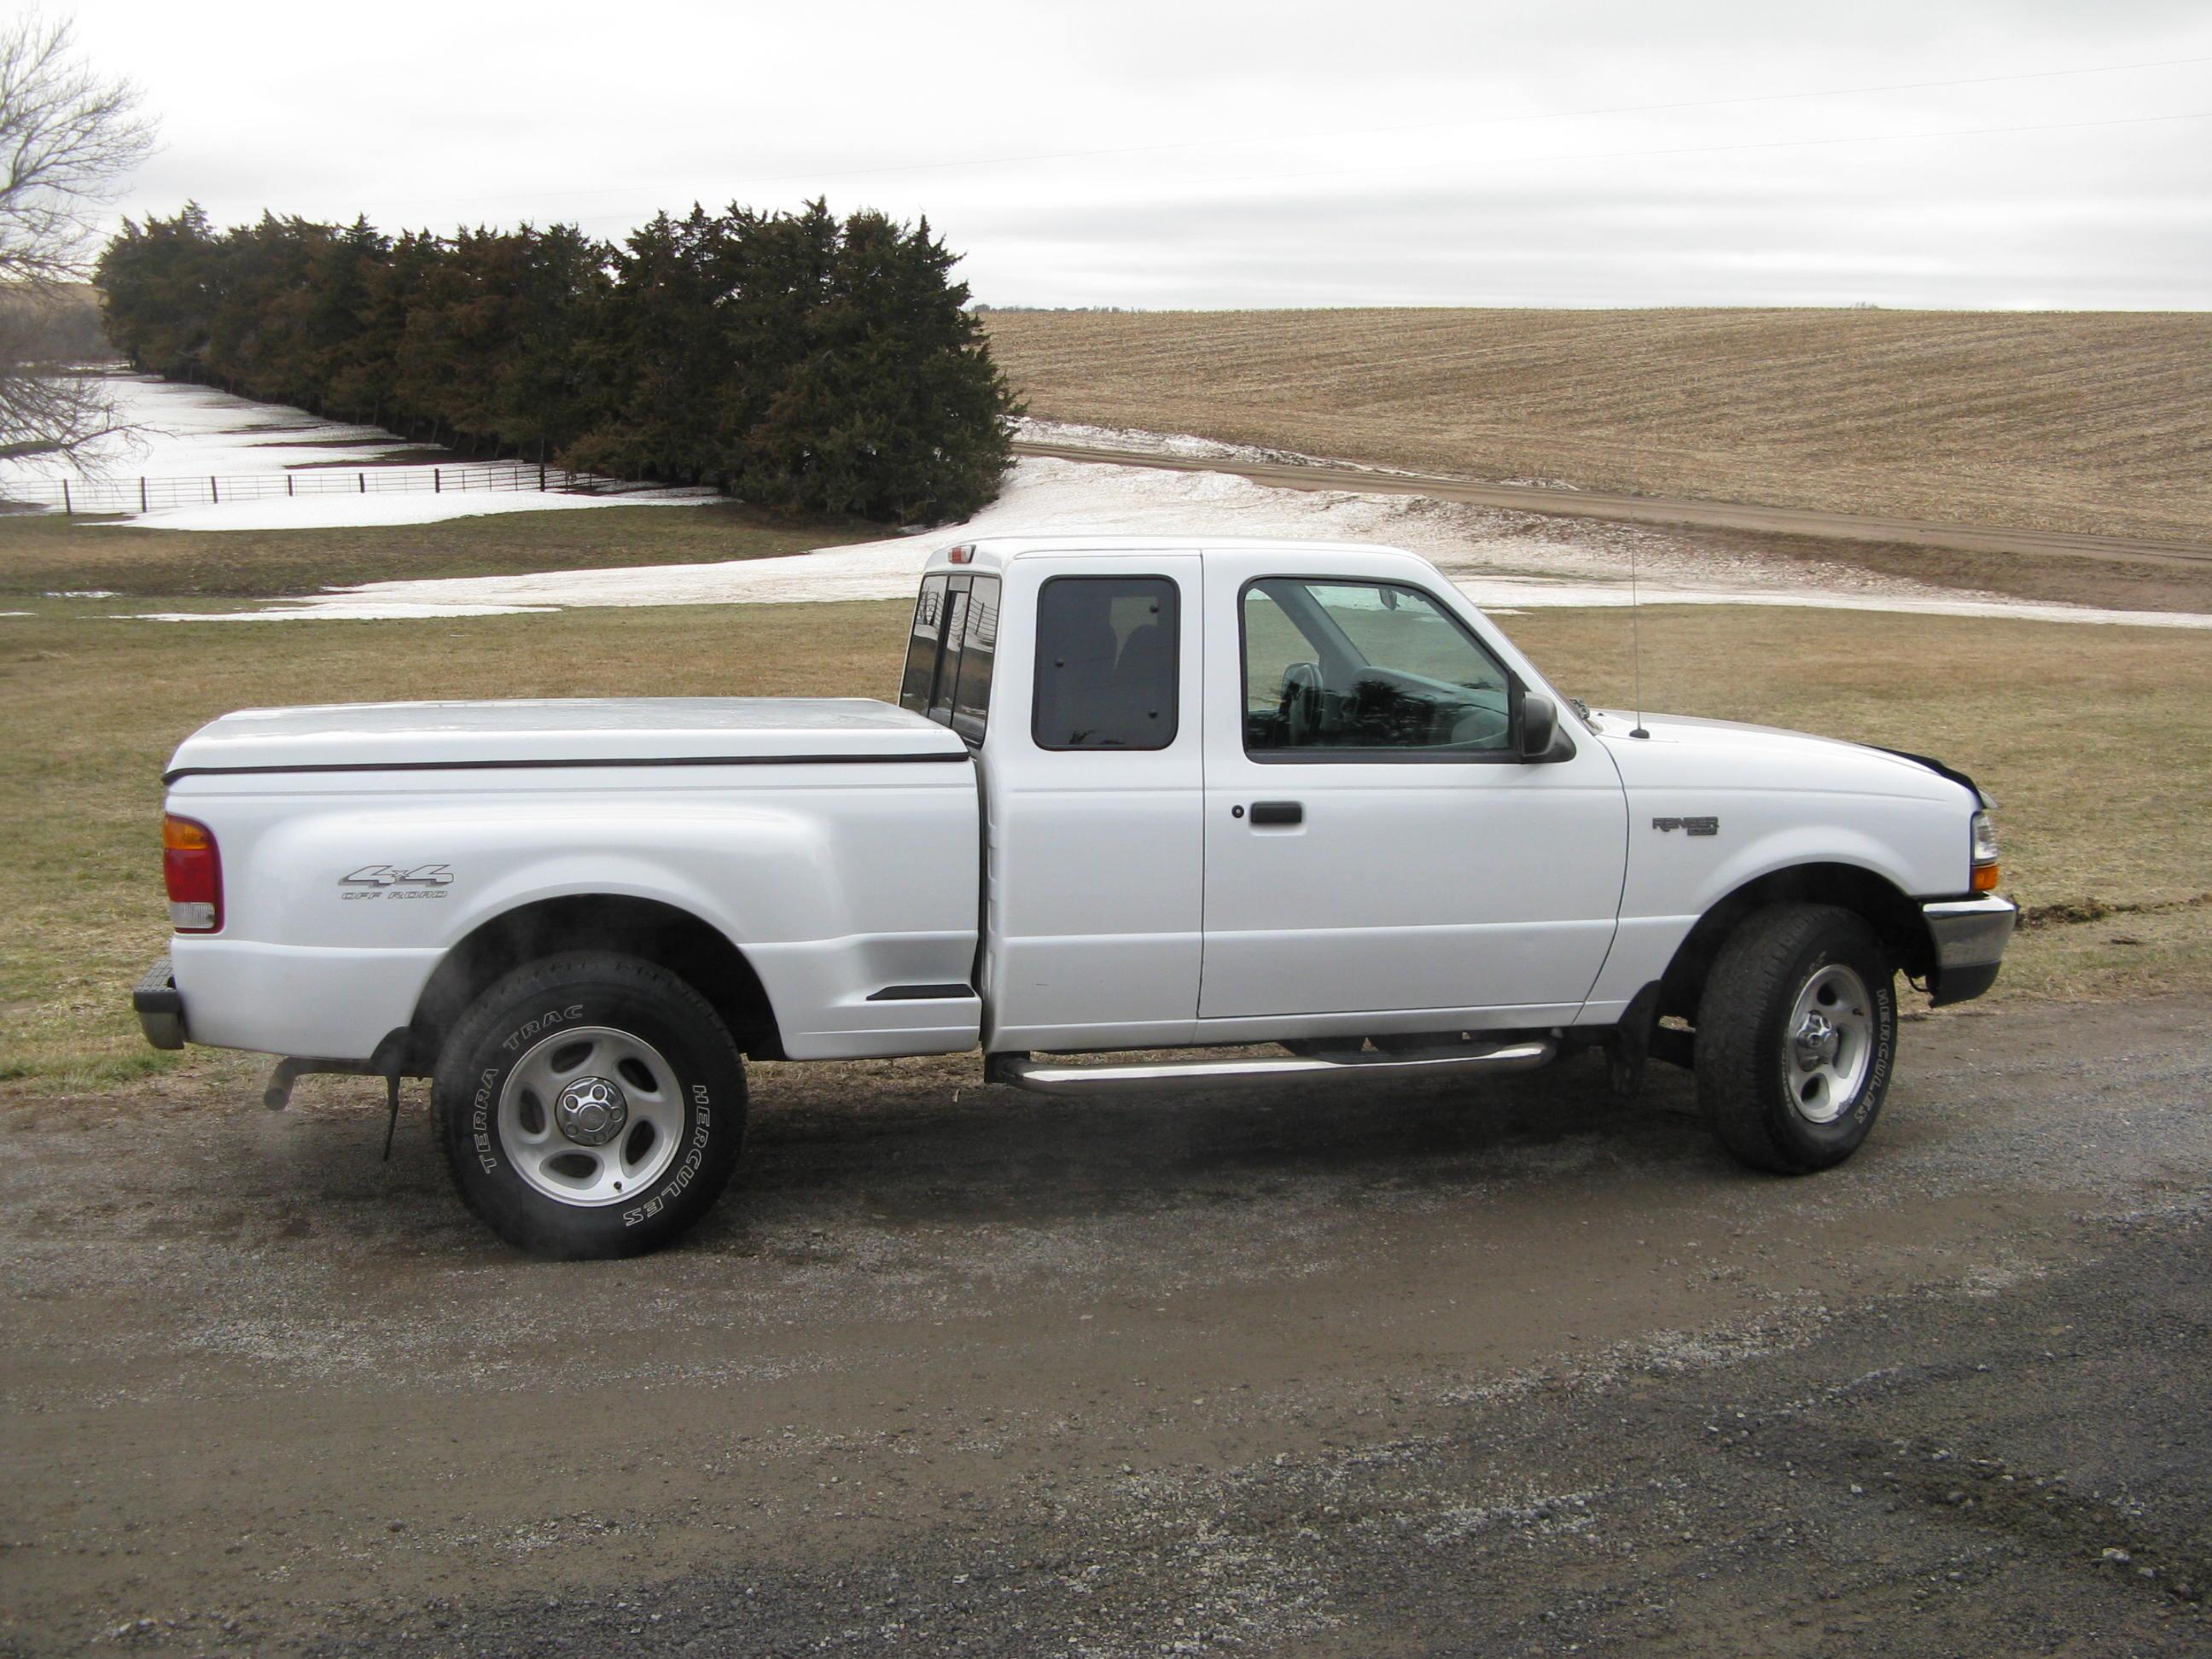 Another Devils2013 1999 Ford Ranger Super Cab post... - 14312549